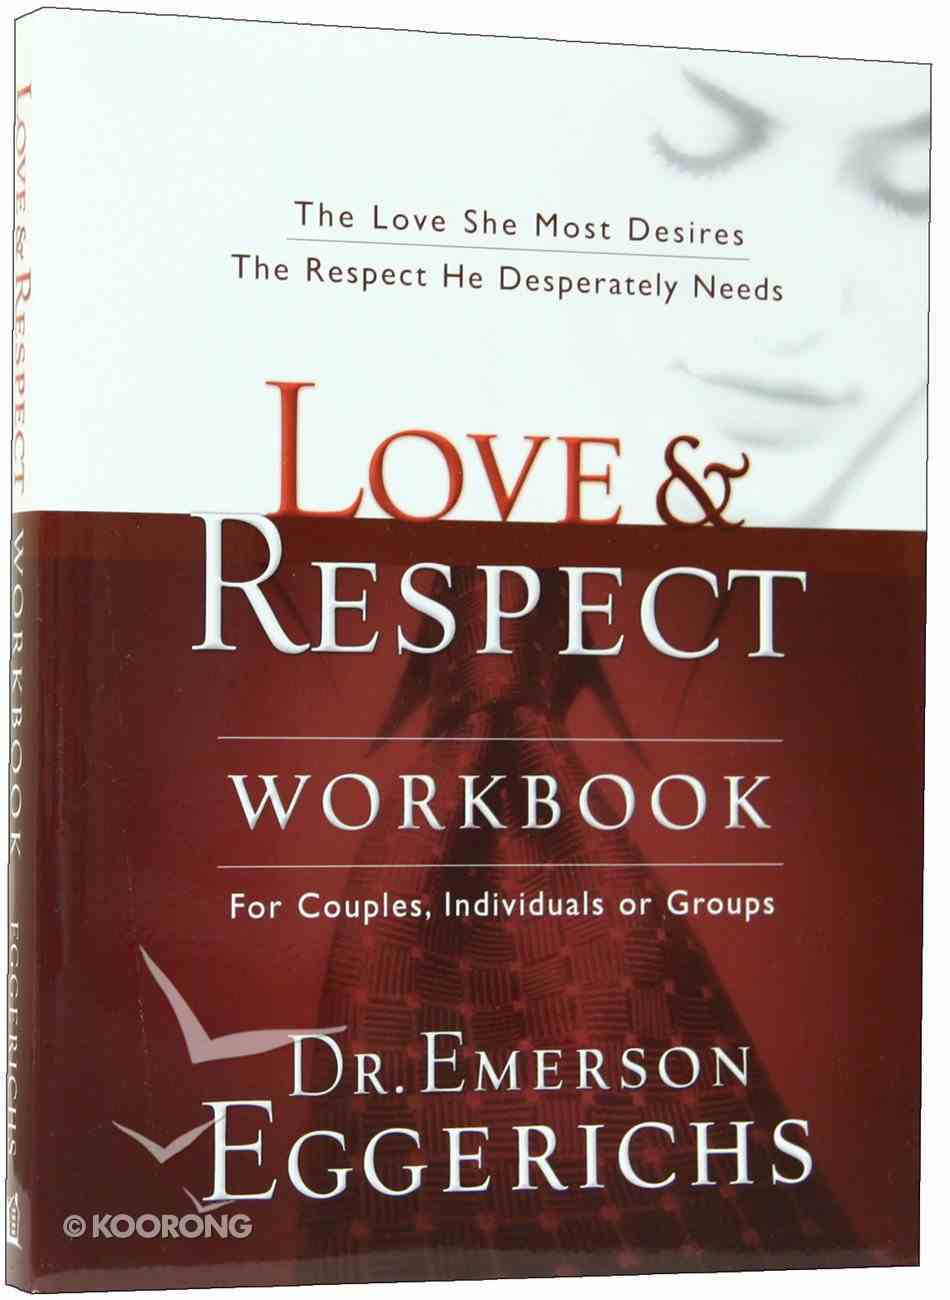 Love & Respect: The Love She Most Desires, the Respect He Desperately Needs (Workbook) Paperback